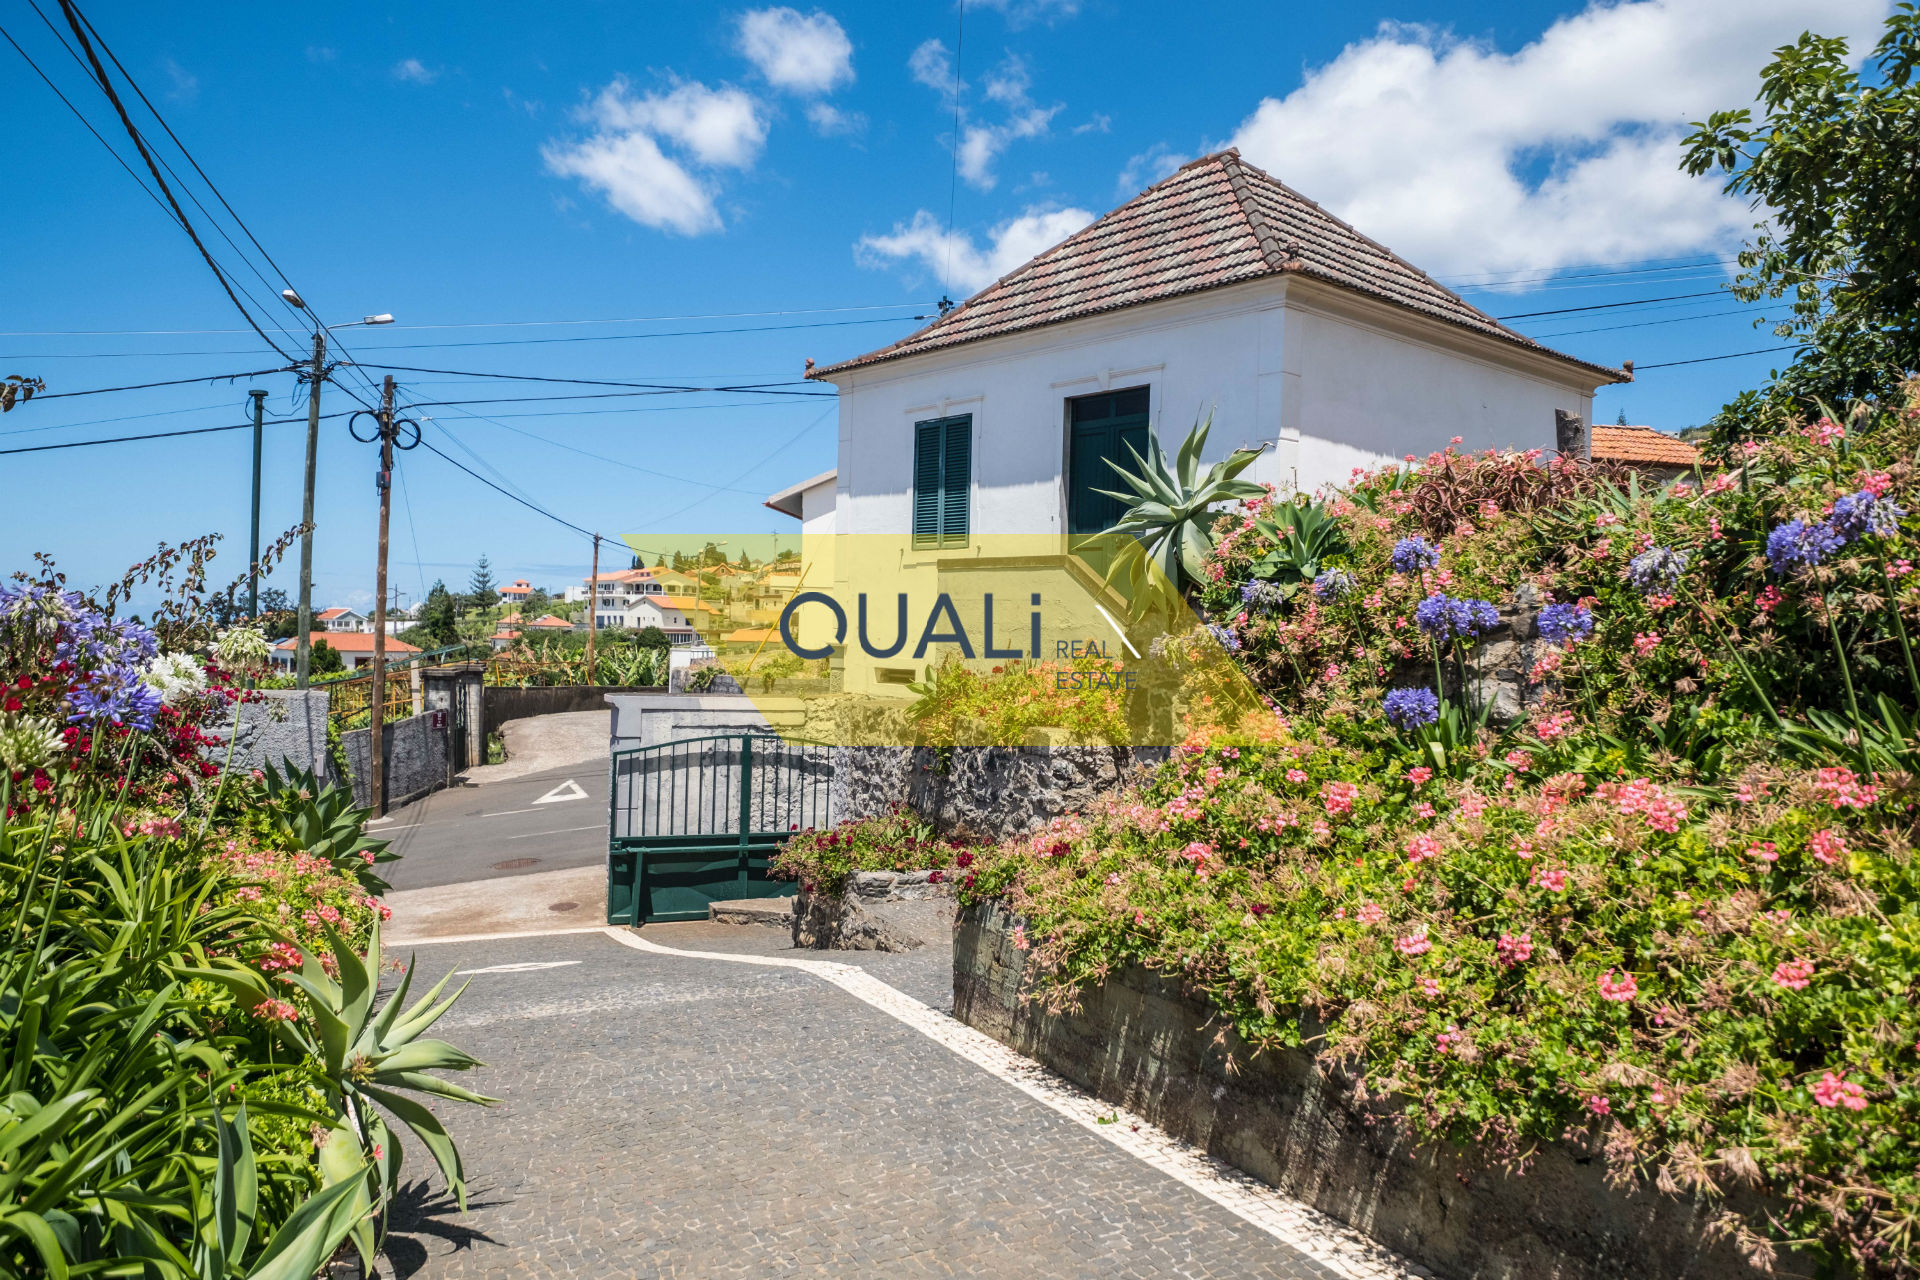 Houses and Land with 7.000m2 in Calheta - € 495.000,00